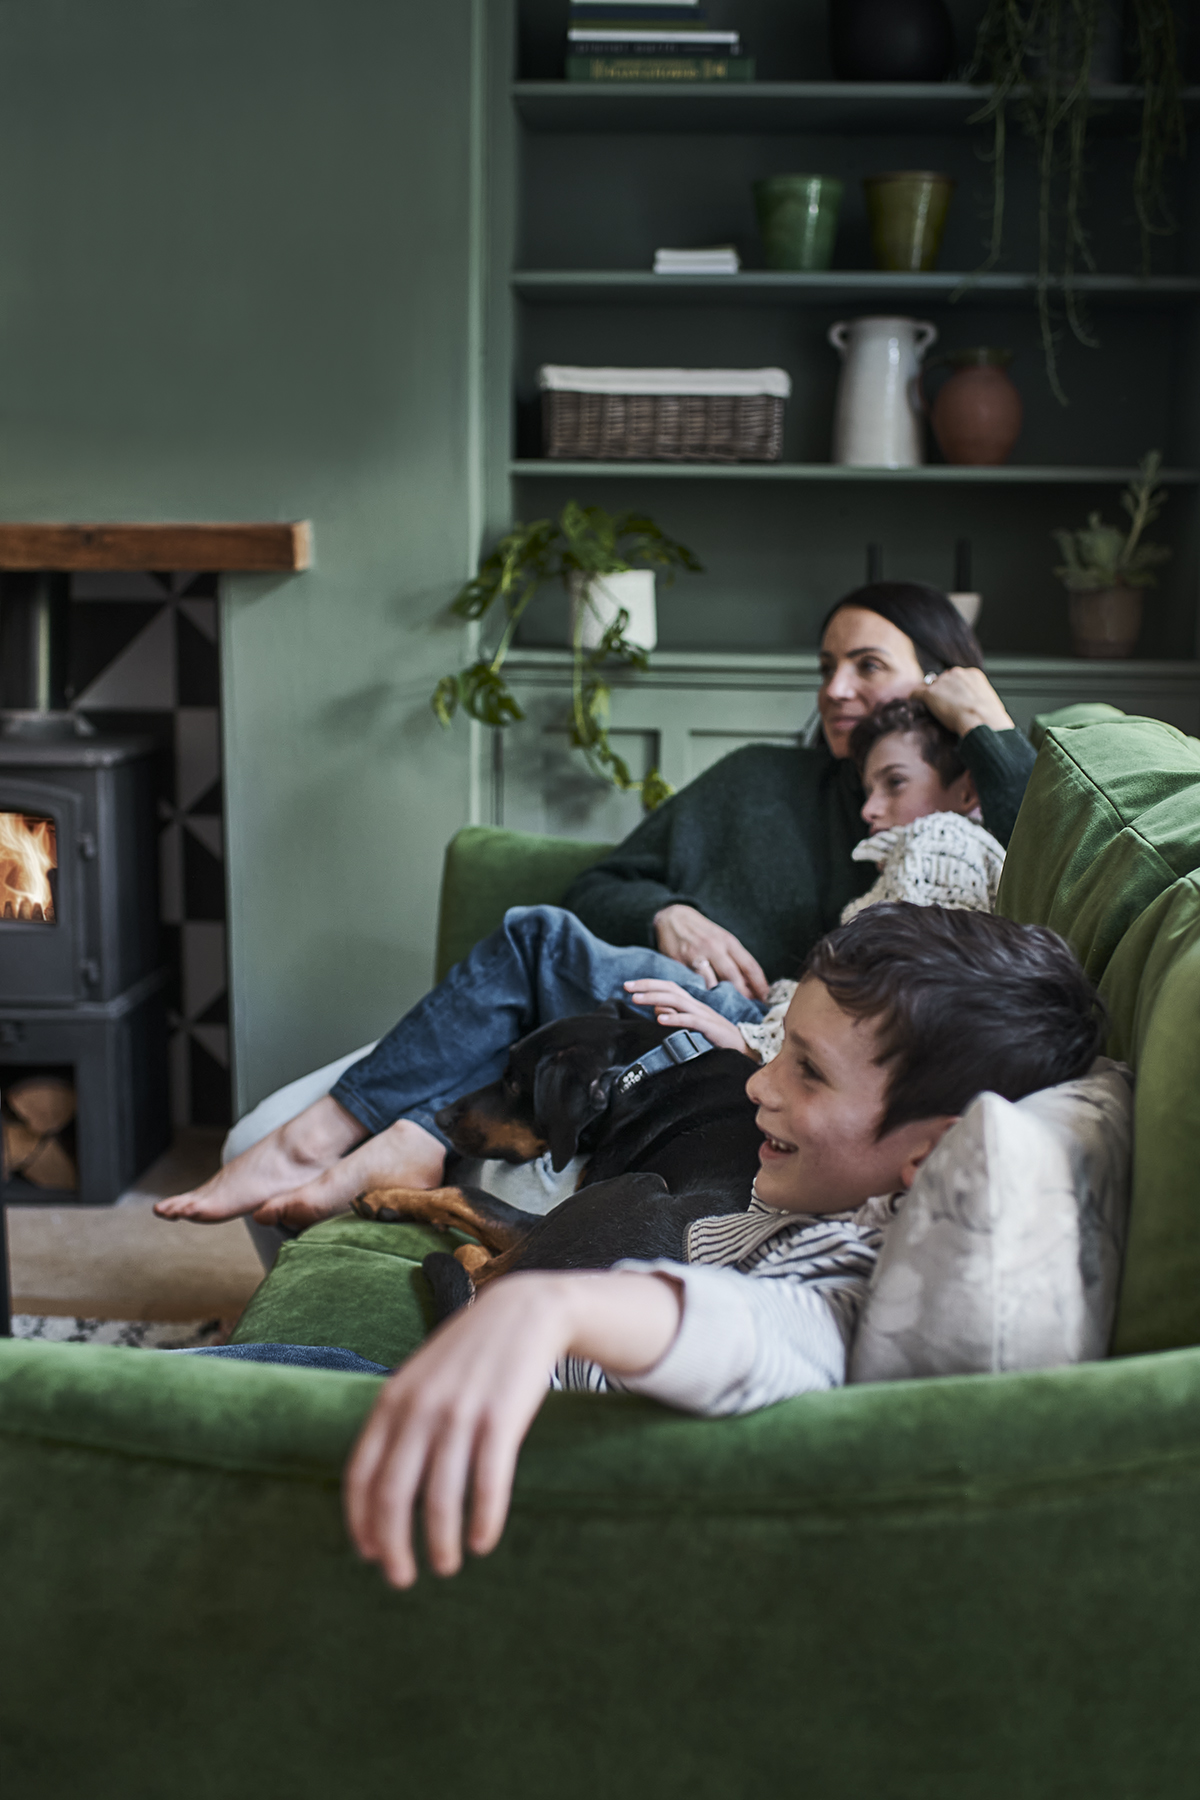 Jennifer Rothbury family home - A cosy family space featuring new cushions